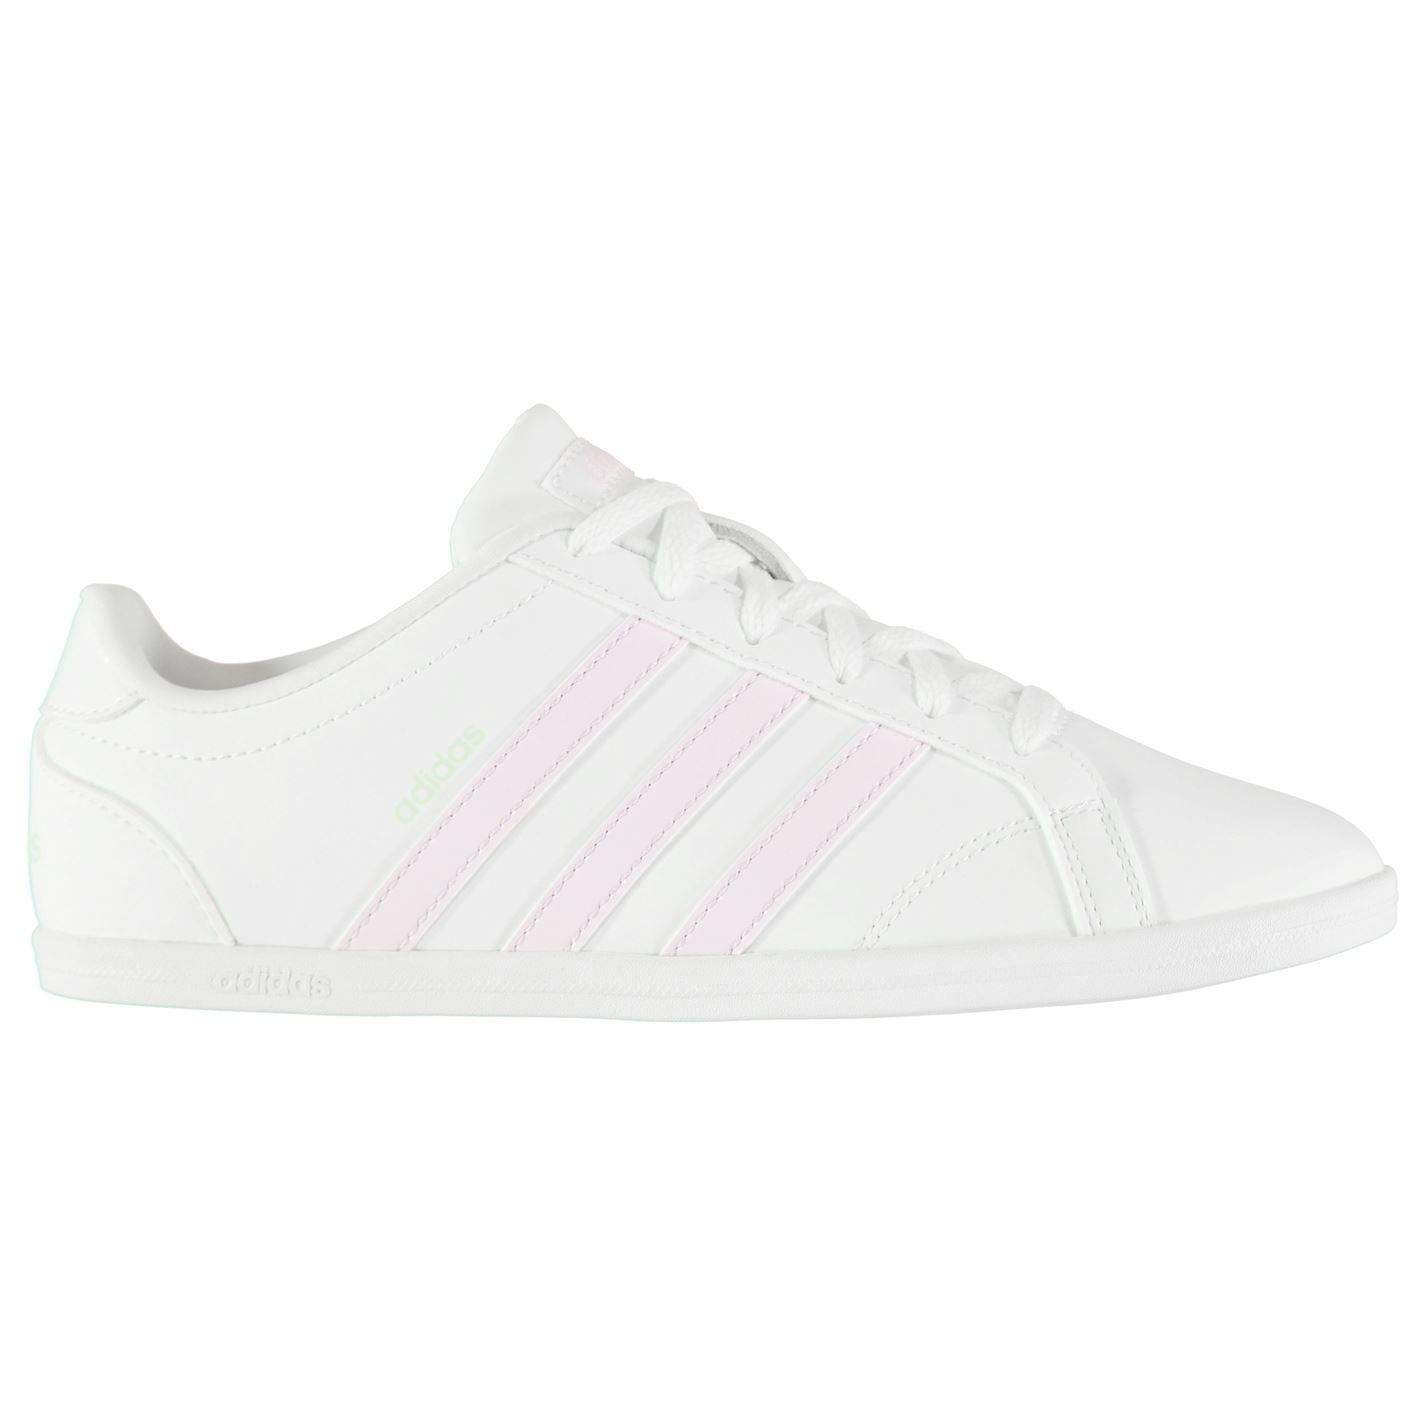 Details about adidas Coneo QT Trainers Womens WhitePink Sports Trainers Sneakers